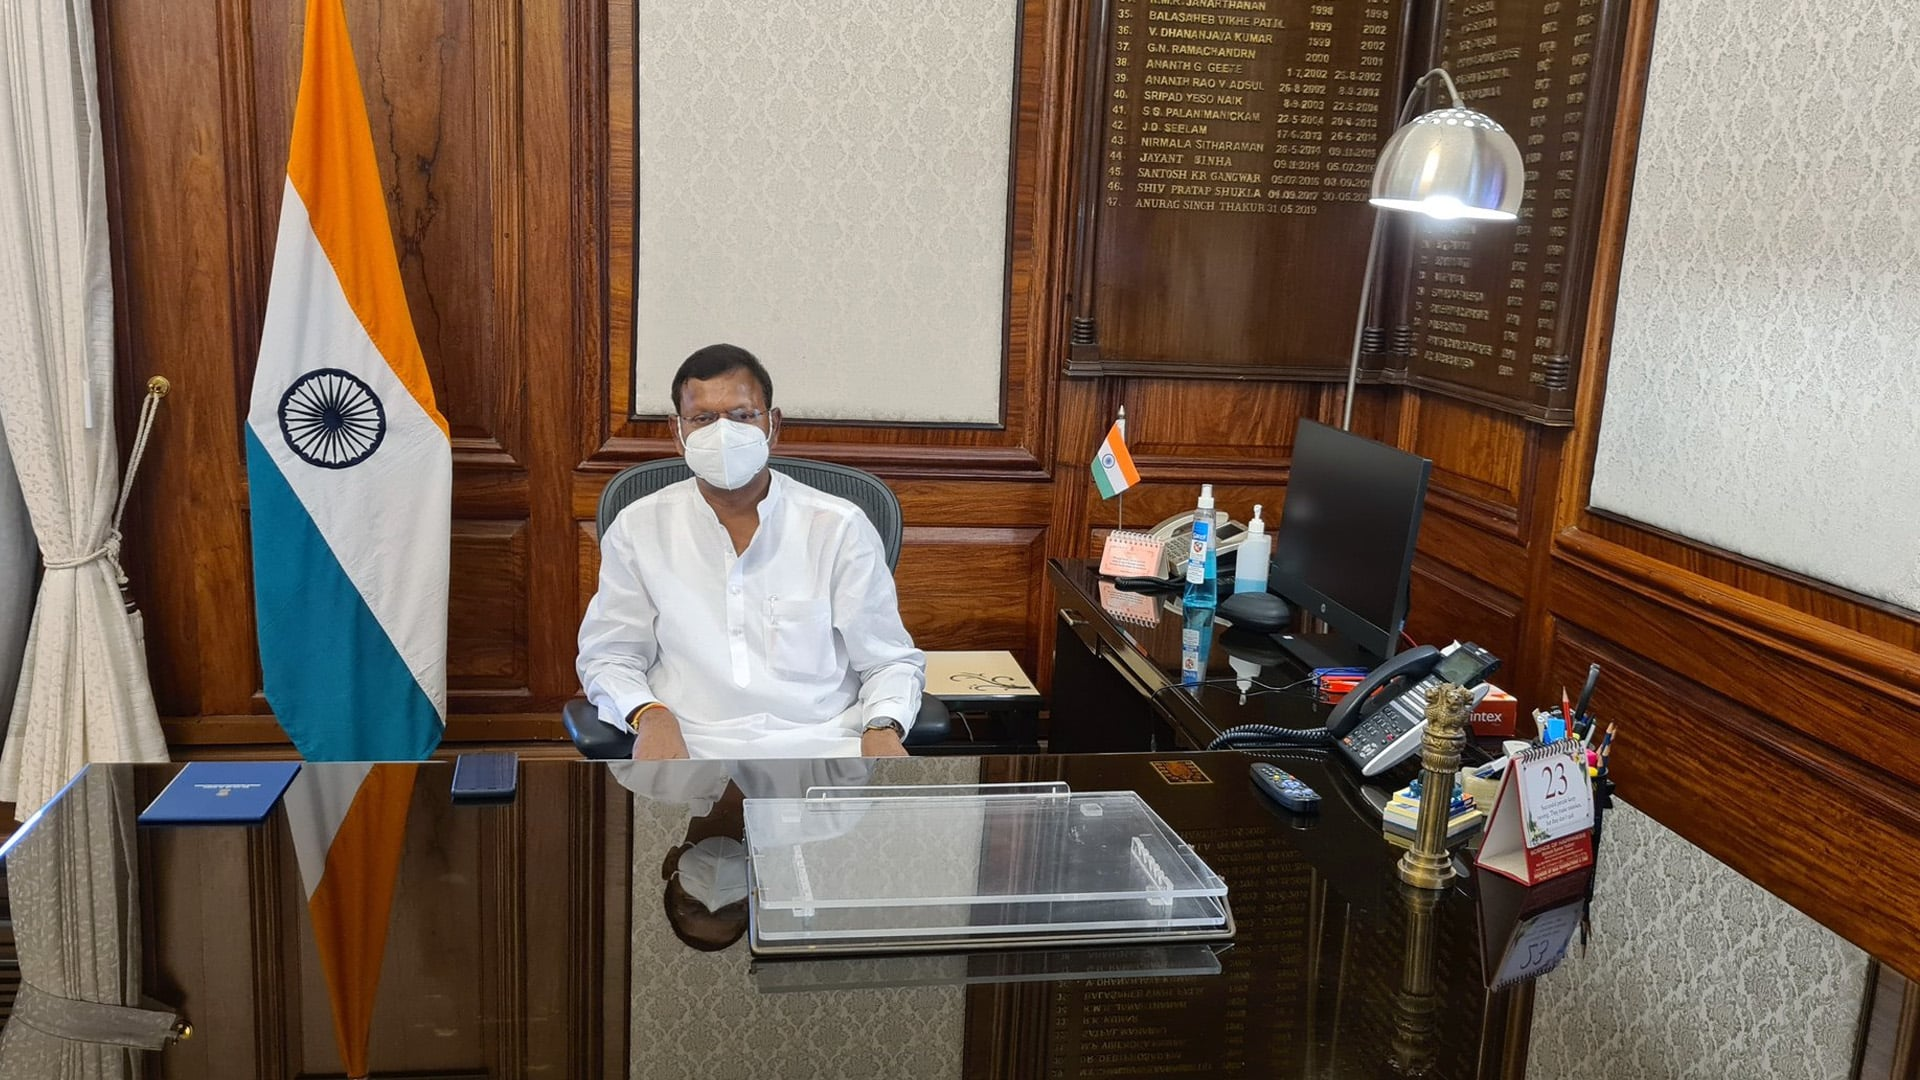 Indian economy showing signs of revival, says Union minister Pankaj Chaudhary